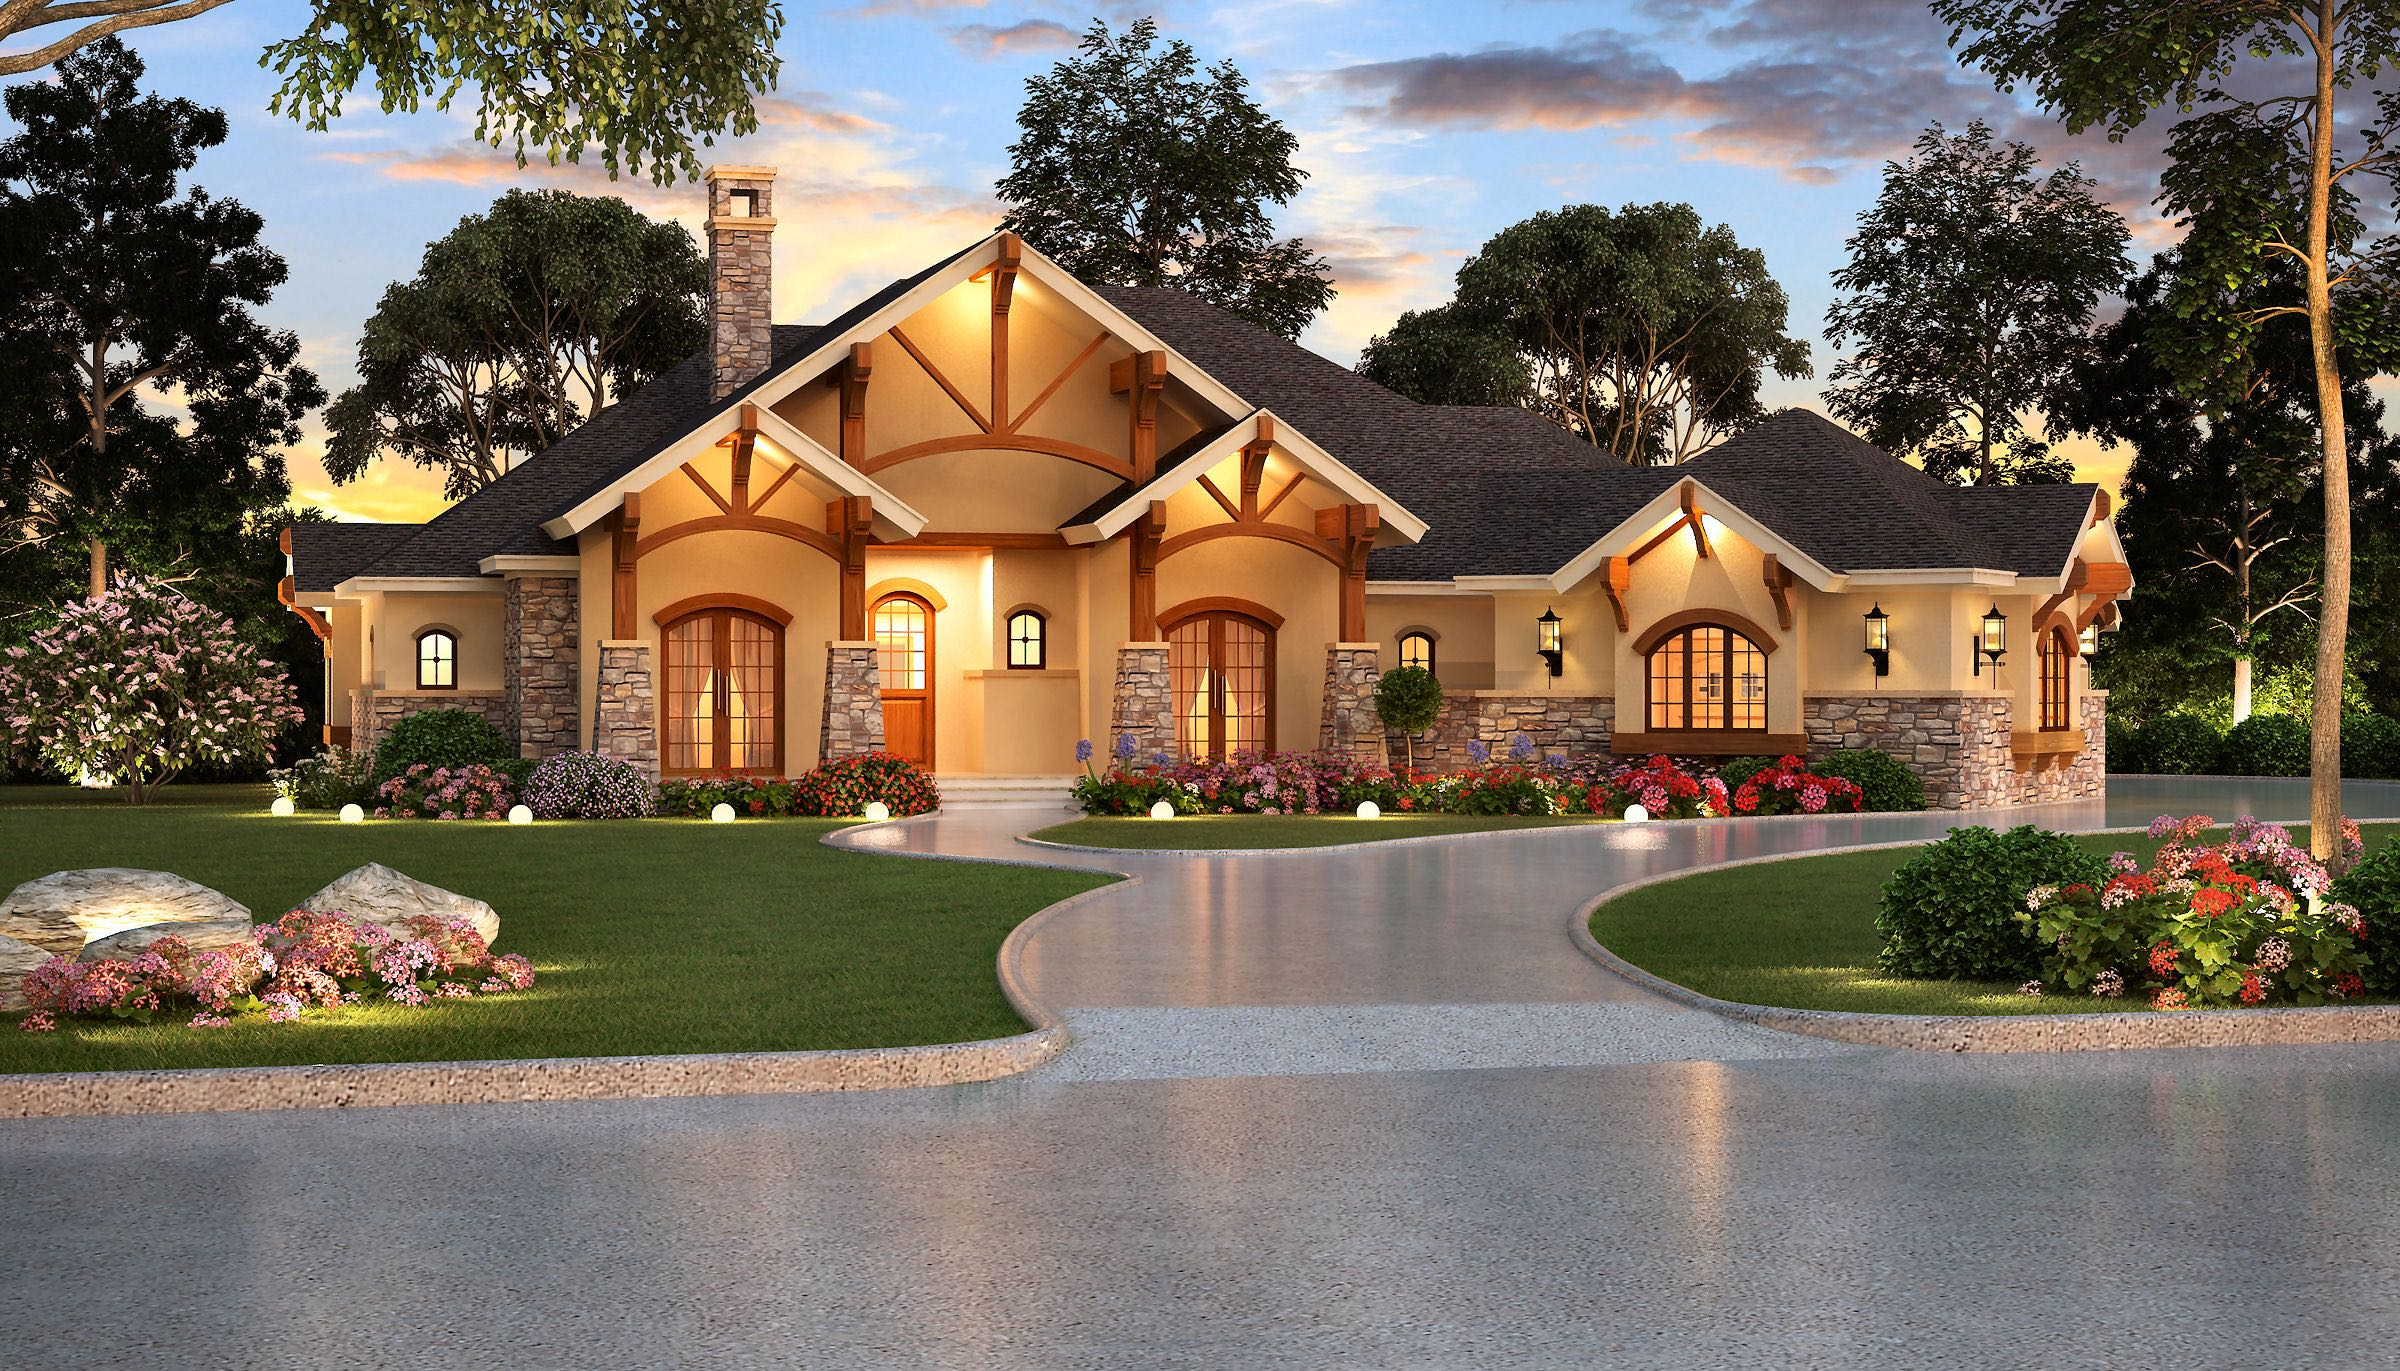 4 Bedrm 3584 Sq Ft Ranch House Plan 195 1000